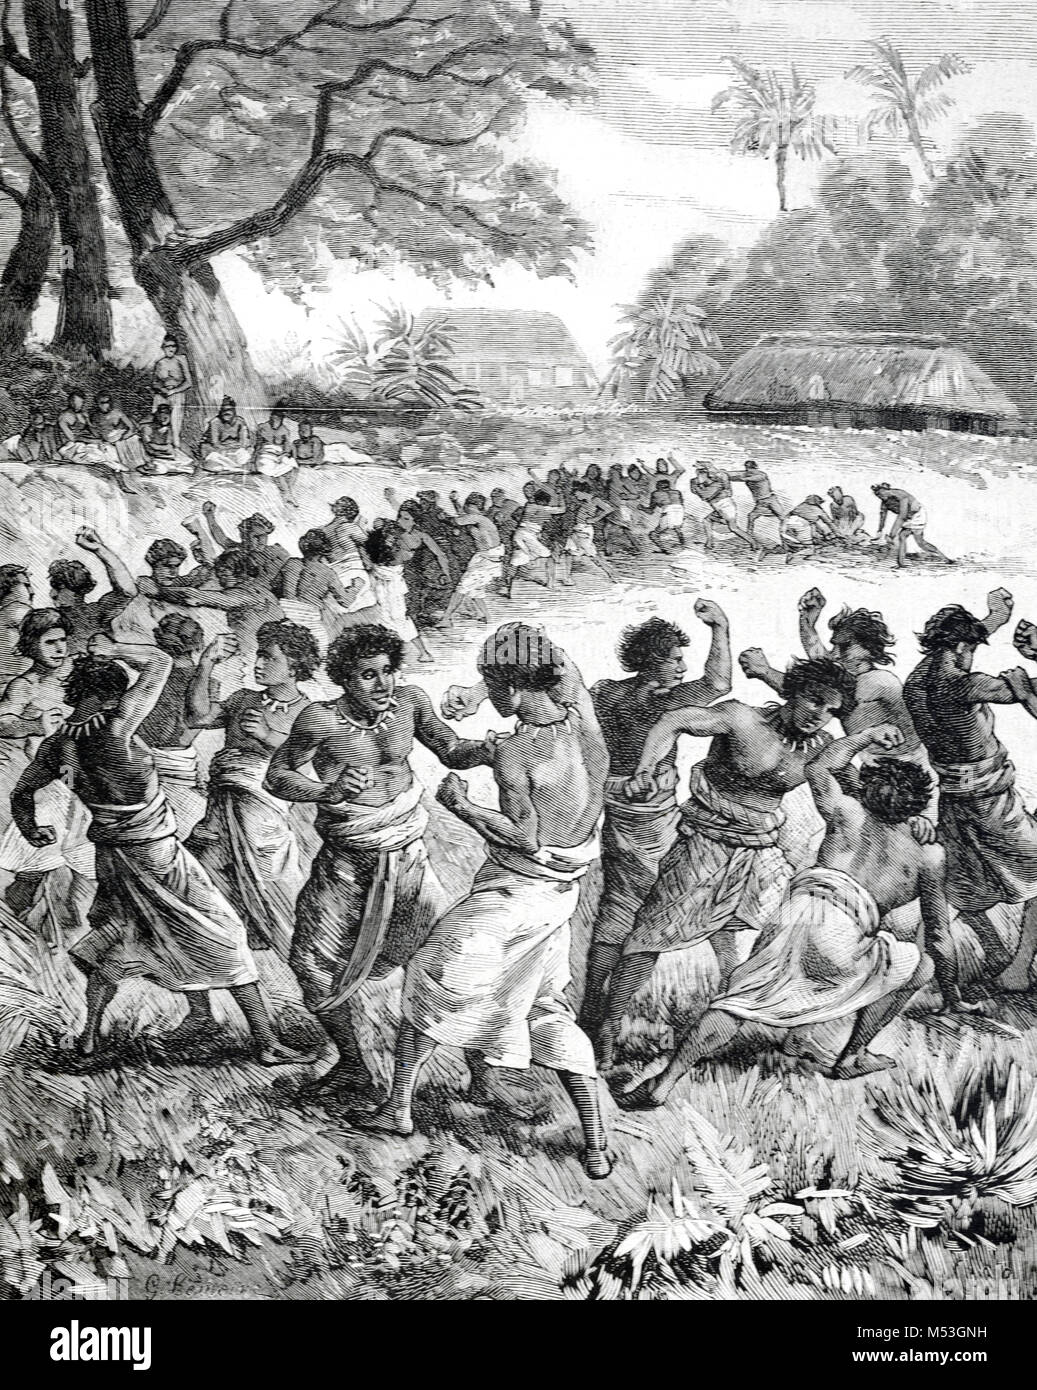 Tongan Men Boxing in Tonga, or the Kingdom of Tonga, Polynesia (Engraving, 1988) - Stock Image